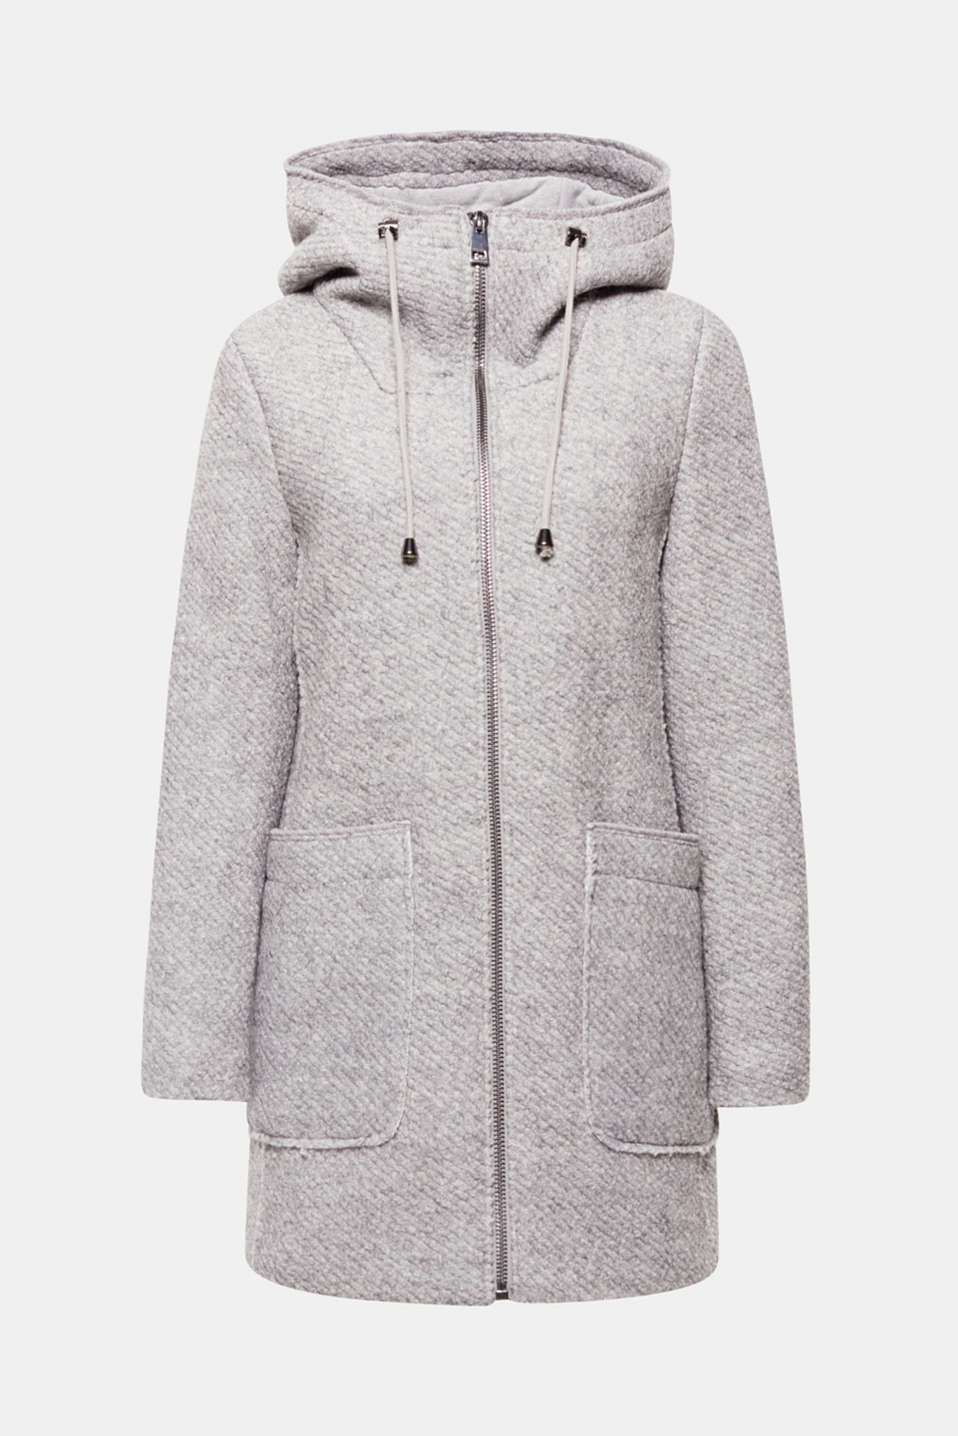 Sensationally sporty and wonderfully warming: the textured, lightly curled outer surface rounds off the look of this coat finished with a hood, centre zip and large patch pockets!